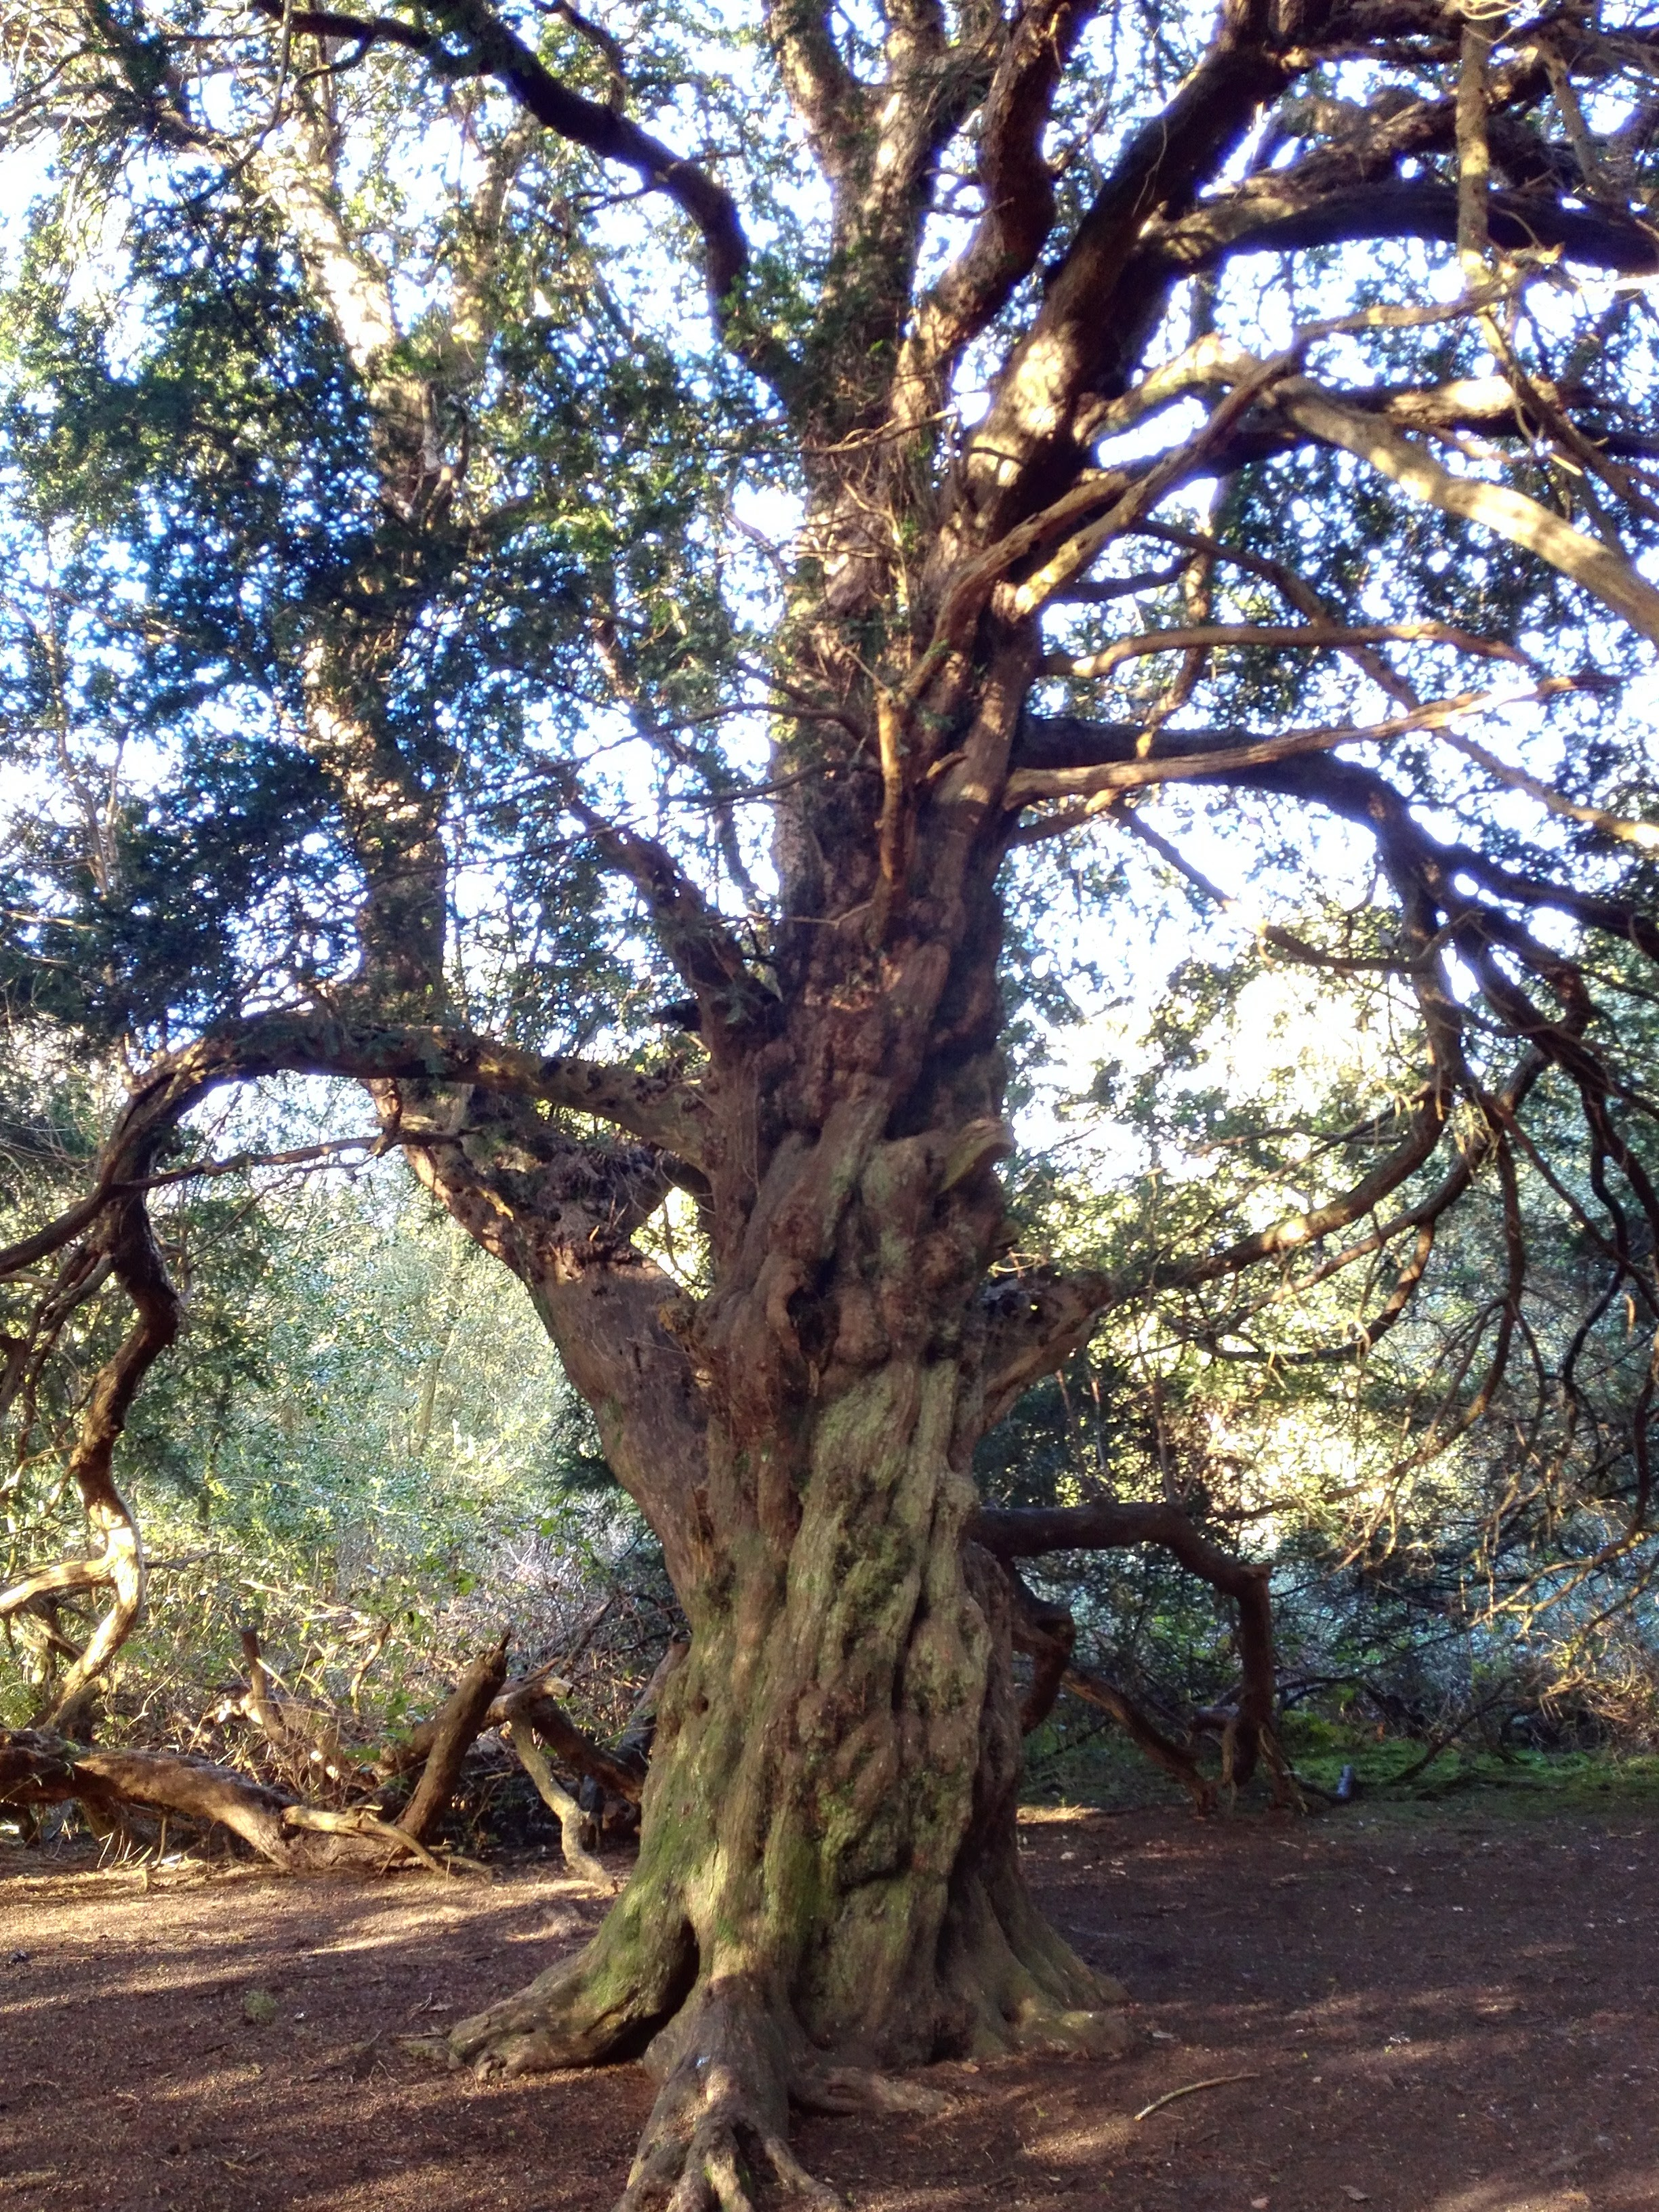 One of the ancient yew trees